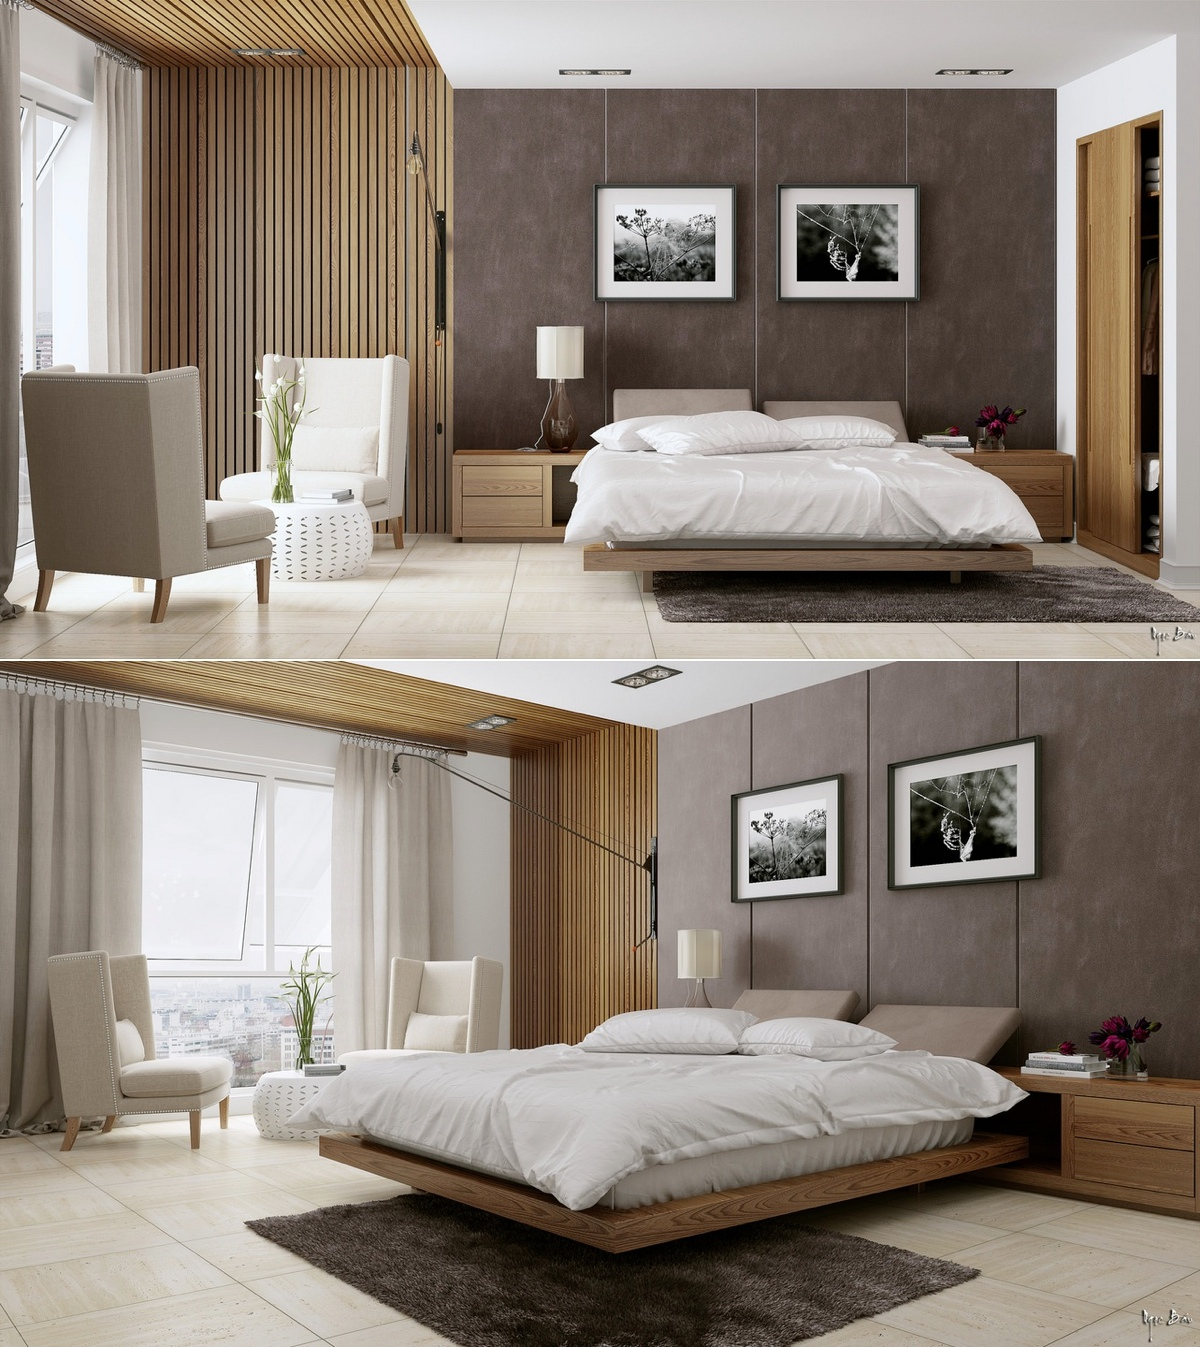 New Bedroom Designs 2014 stylish bedroom designs with beautiful creative details